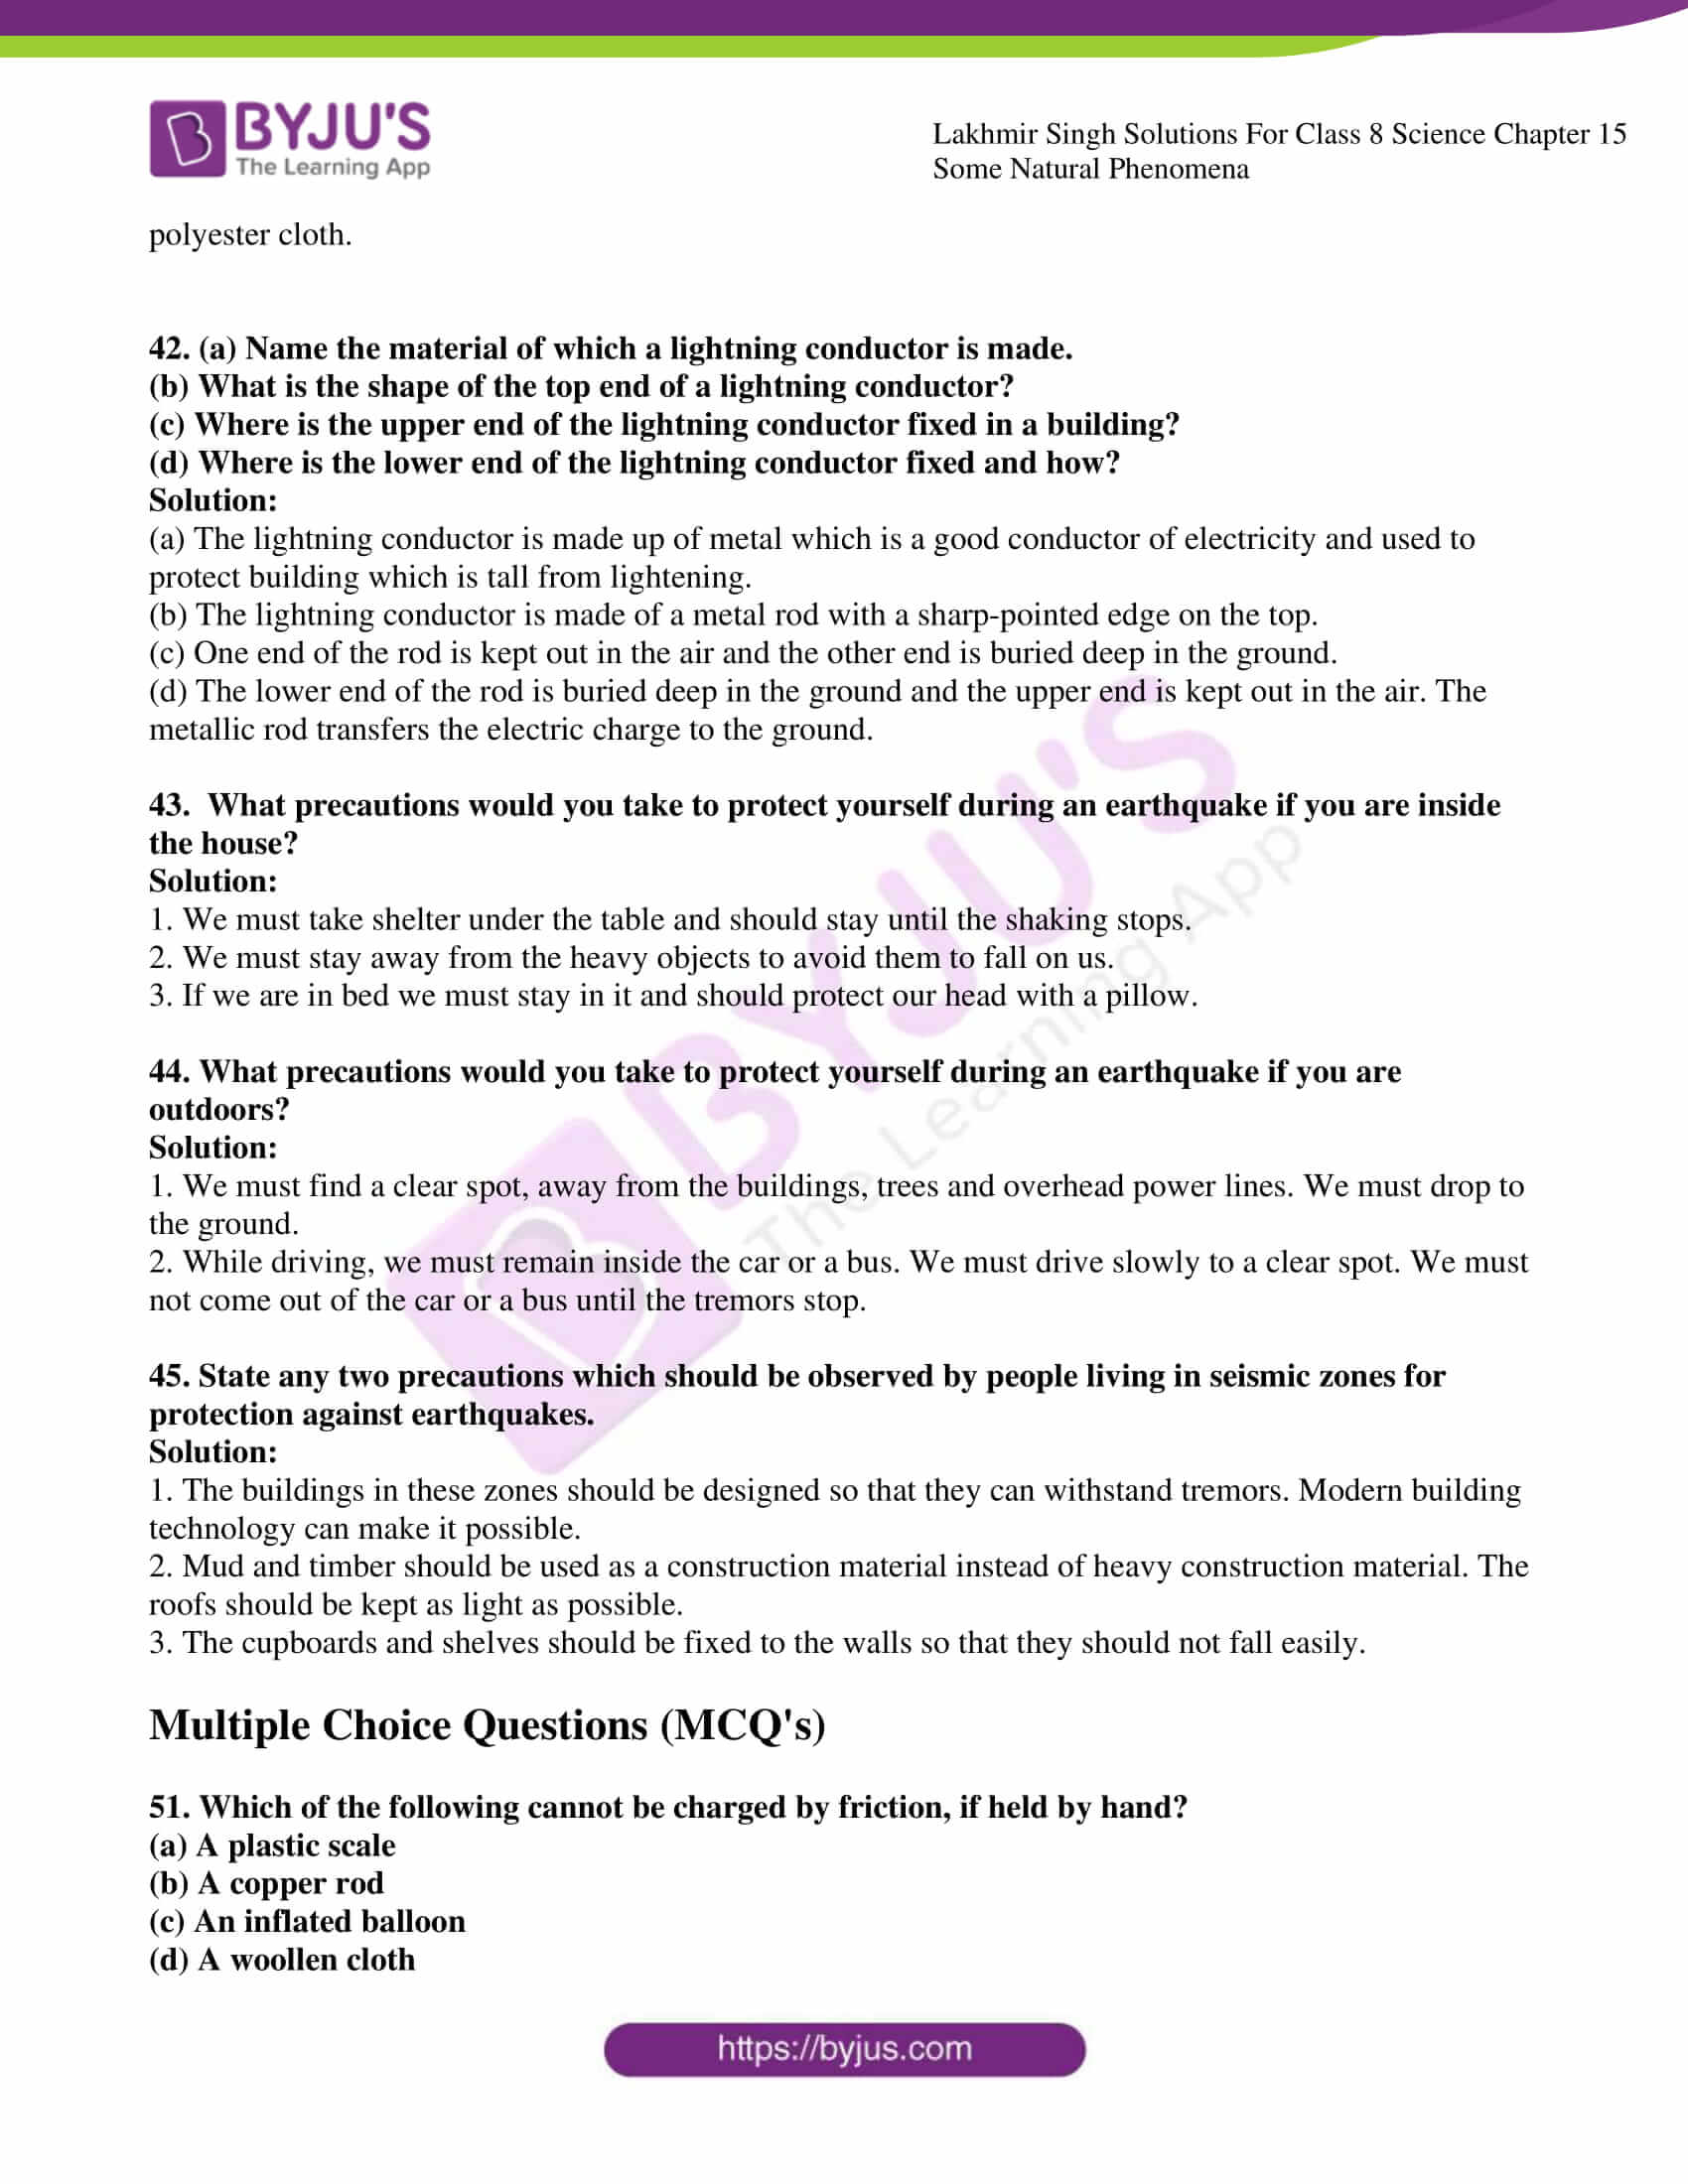 lakhmir singh solutions for class 8 science chapter 15 07